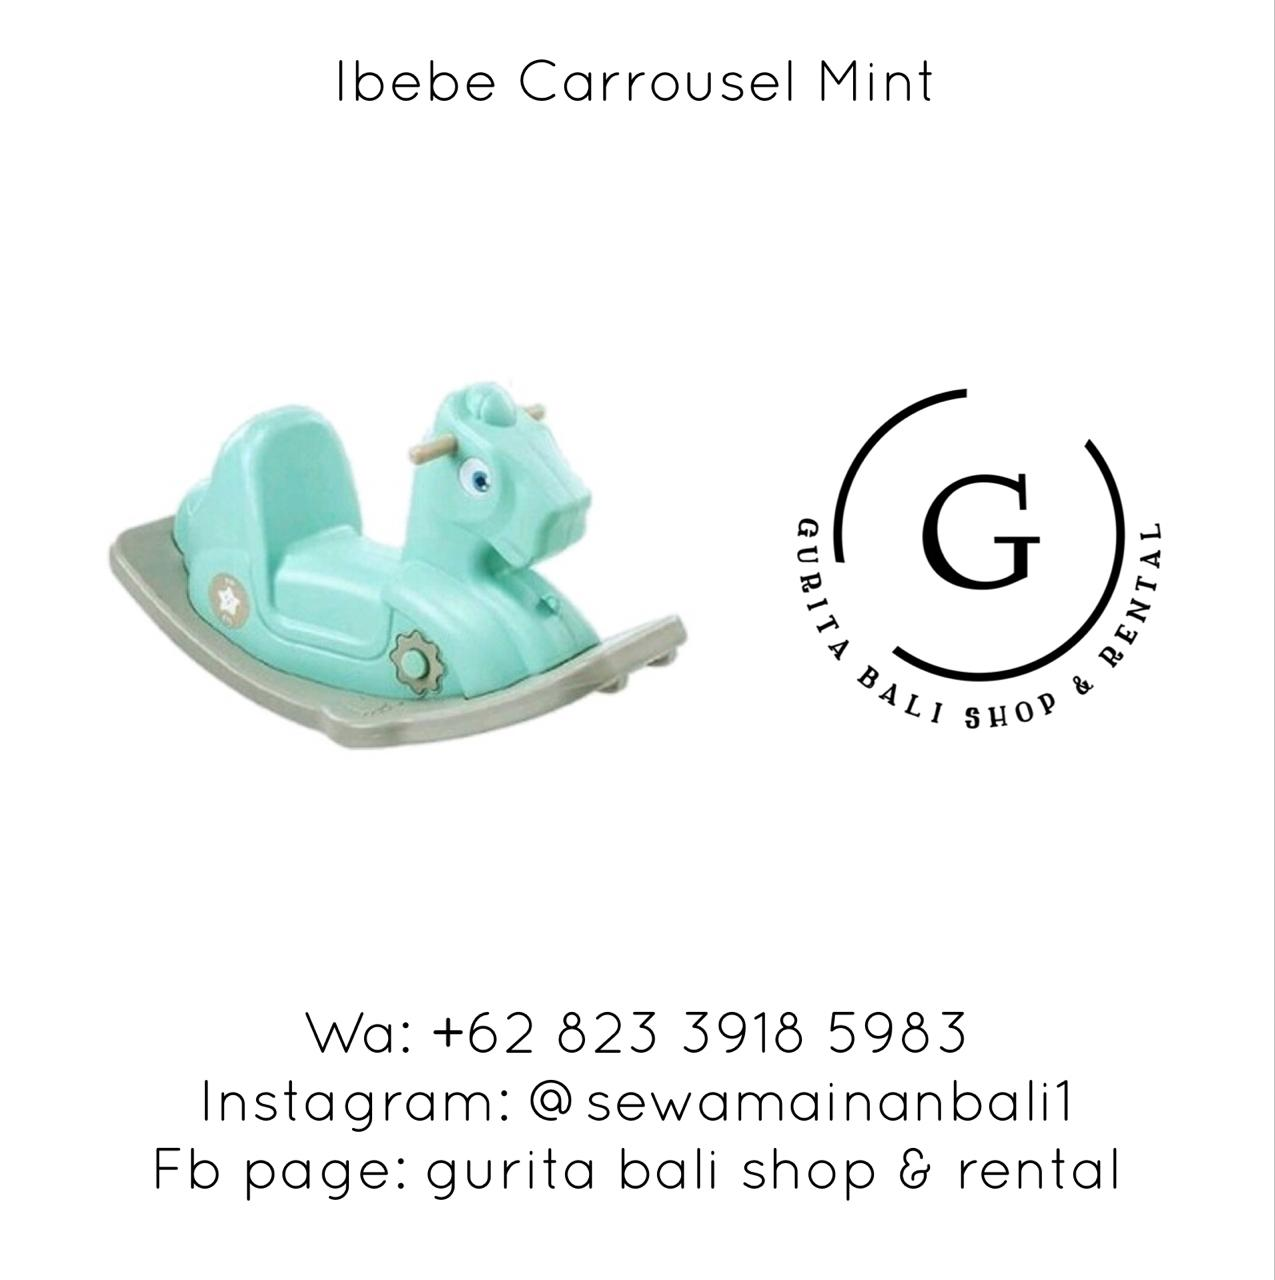 IBEBE CARROUSEL MINT